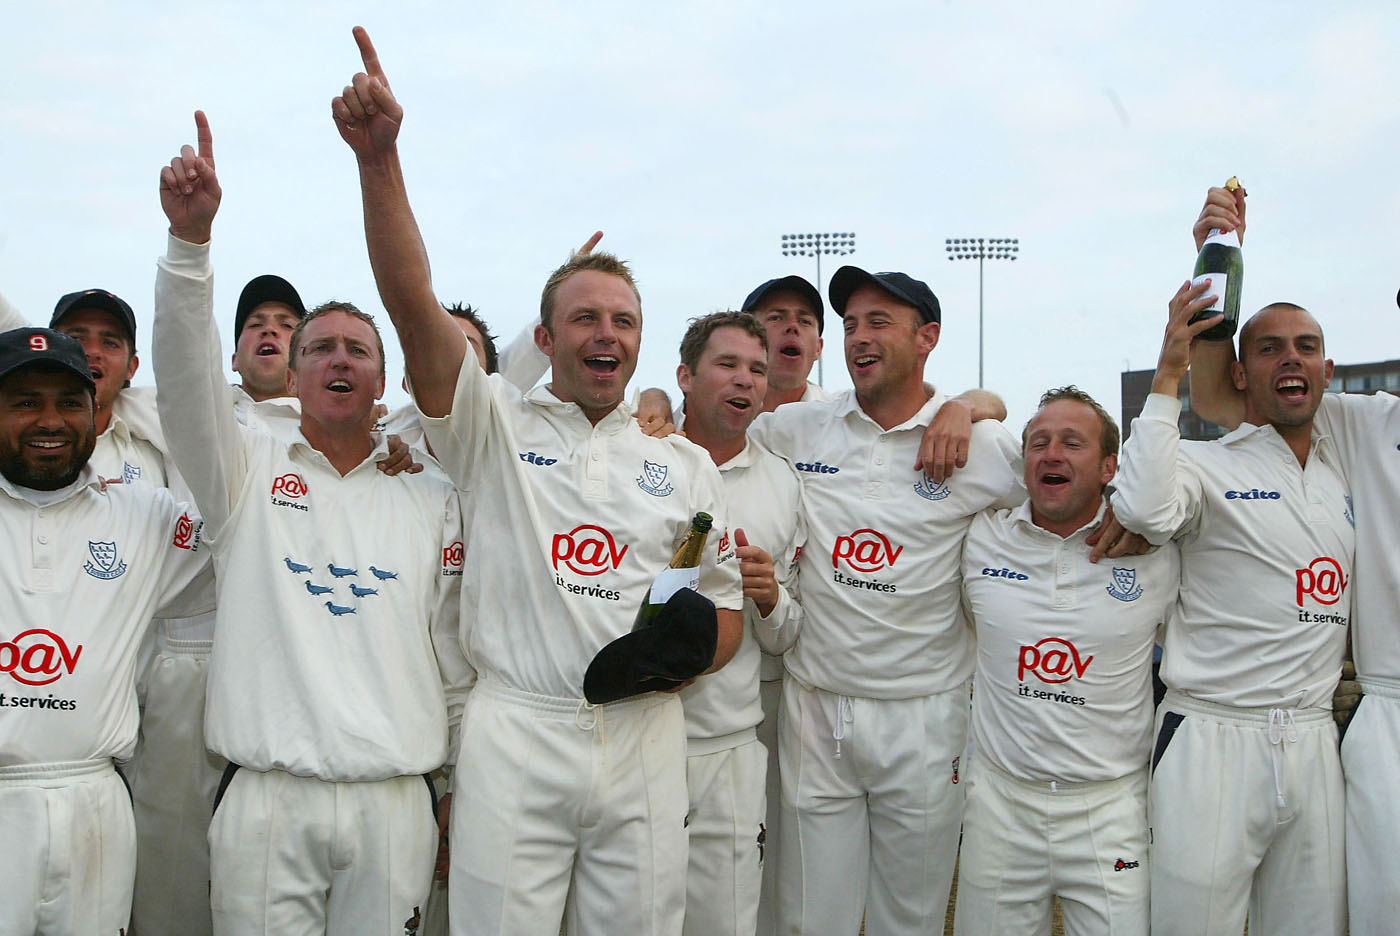 Sussex celebrate their County Championship triumph during play